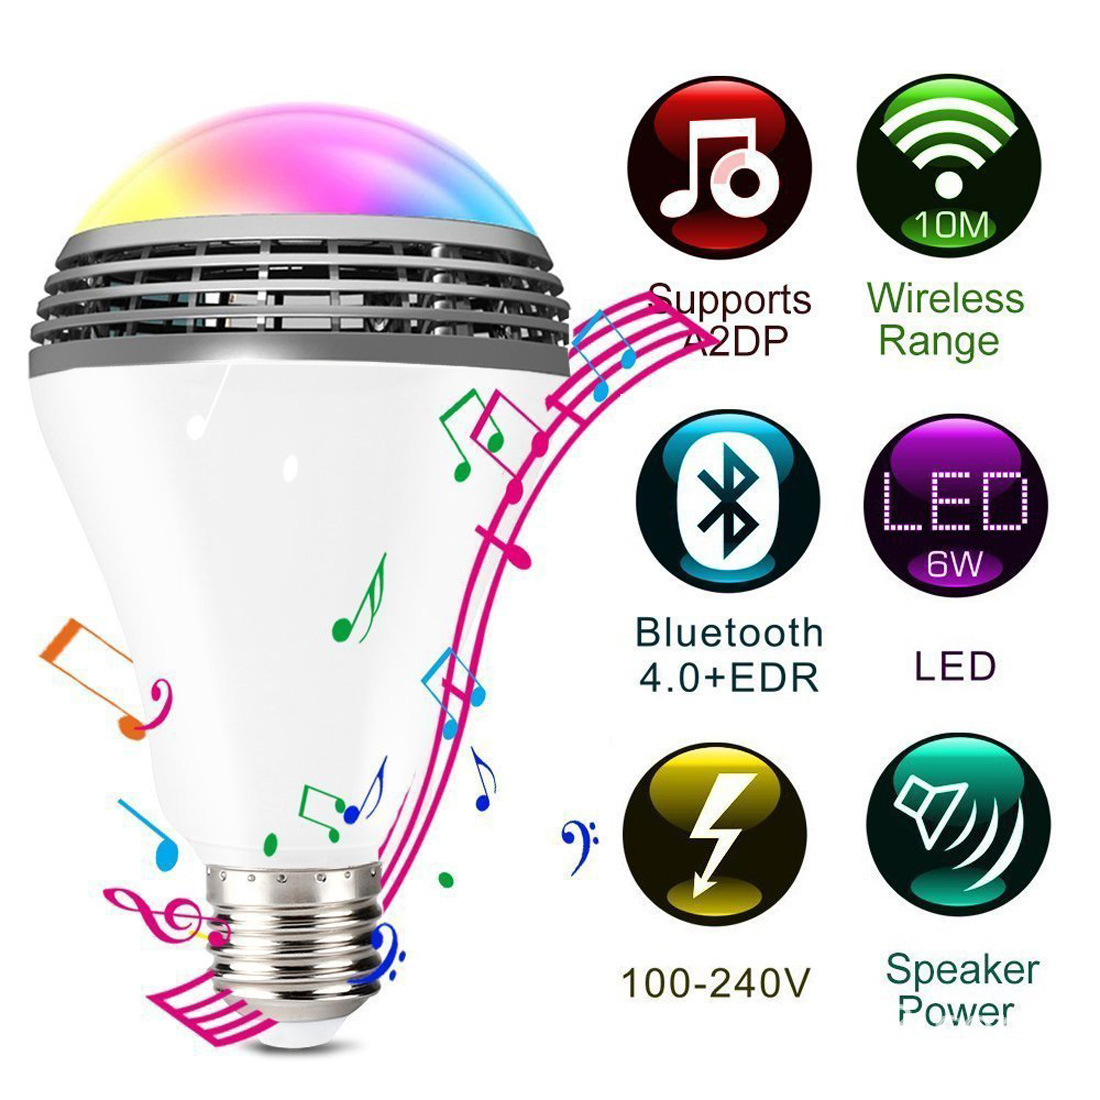 Smart LED Light Bulb E27 Smart Wireless Bluetooth Speaker Bulb Music Playing Dimmable RGB Colour Bluetooth Control Lamp Dropship